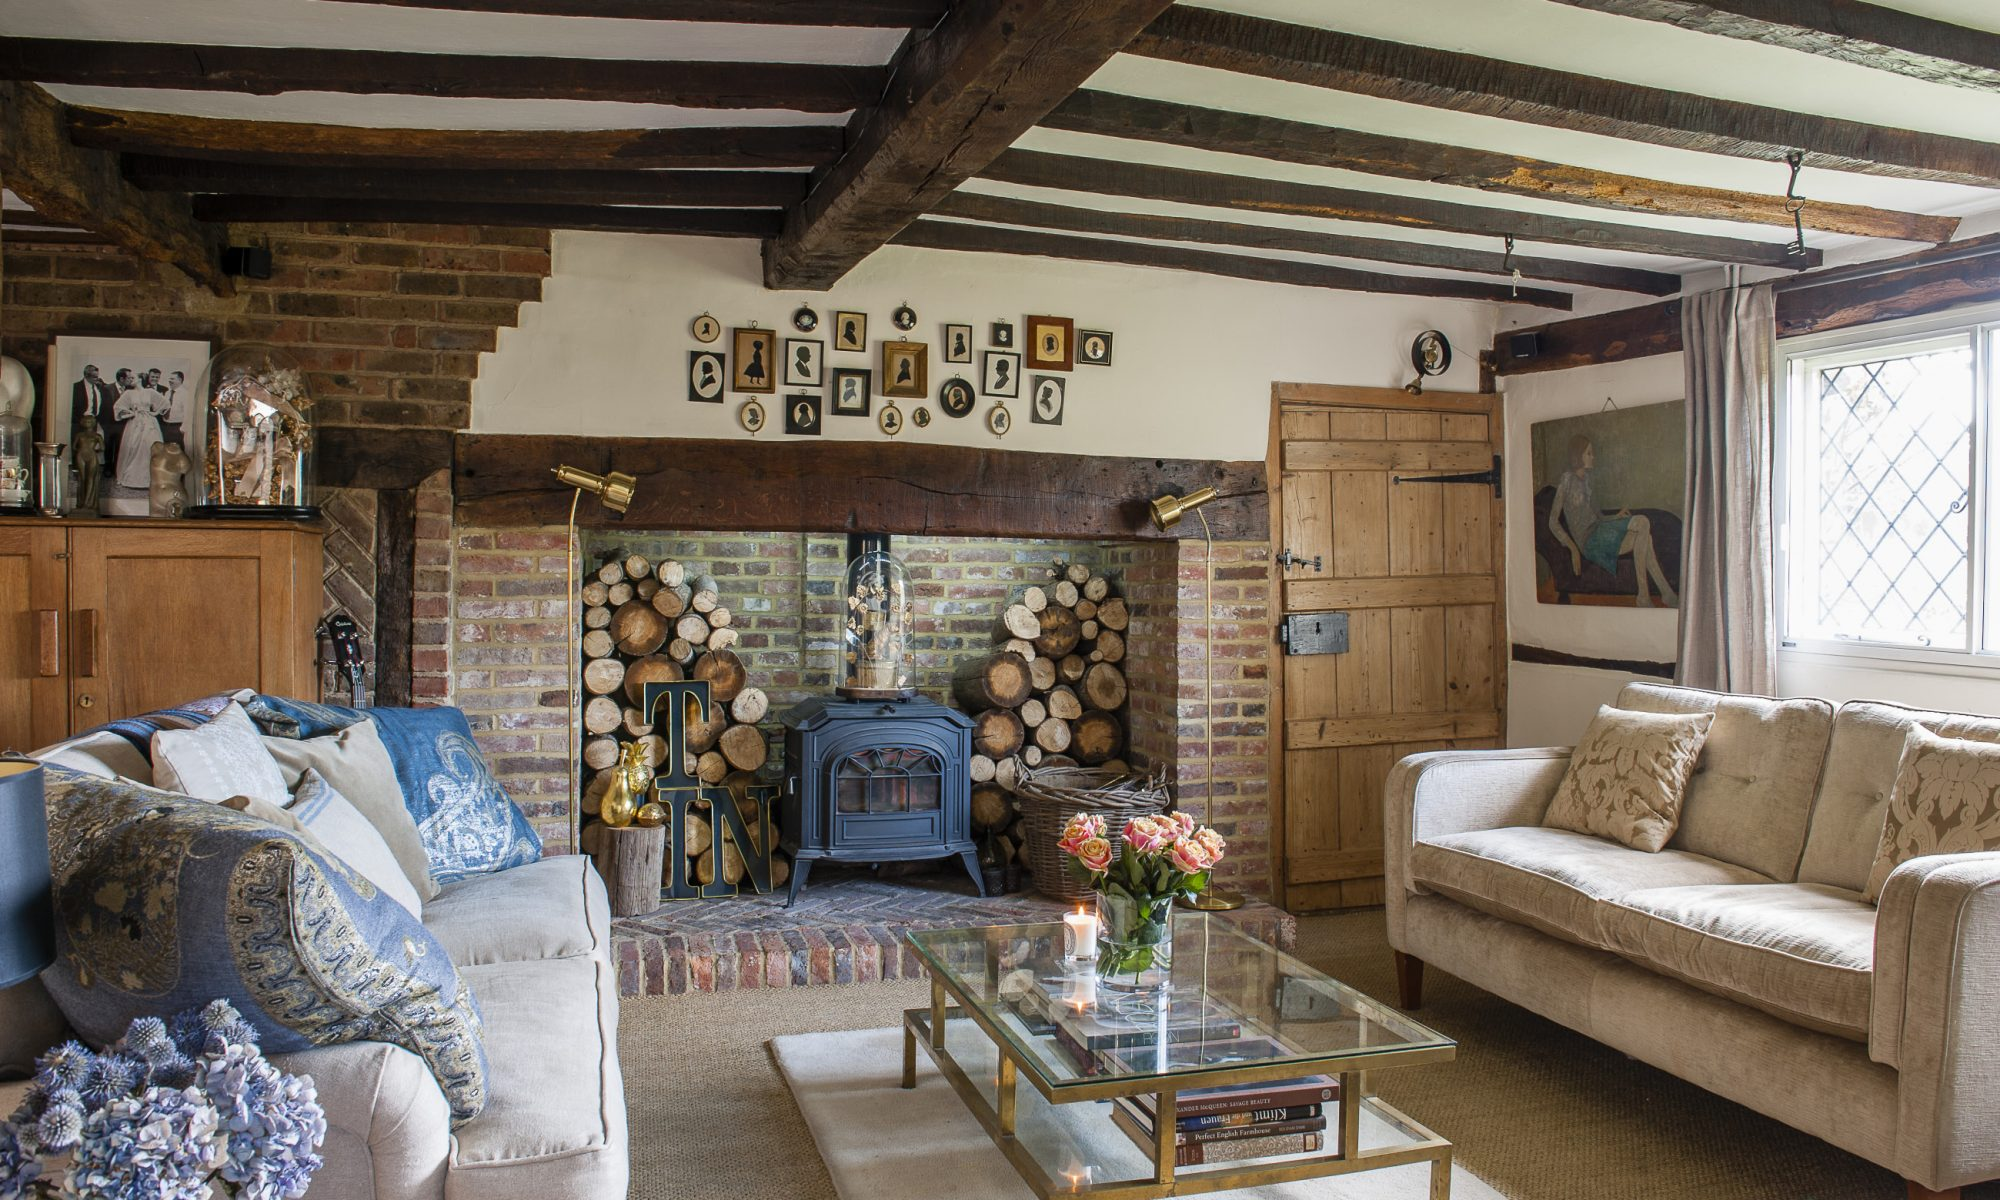 When creative London couple Roni and John decided to relocate to the country, they initially set their sights on a Kentish Georgian property. But once they'd happened upon a pretty 17th century cottage they knew they had found what they had ultimately been looking for...